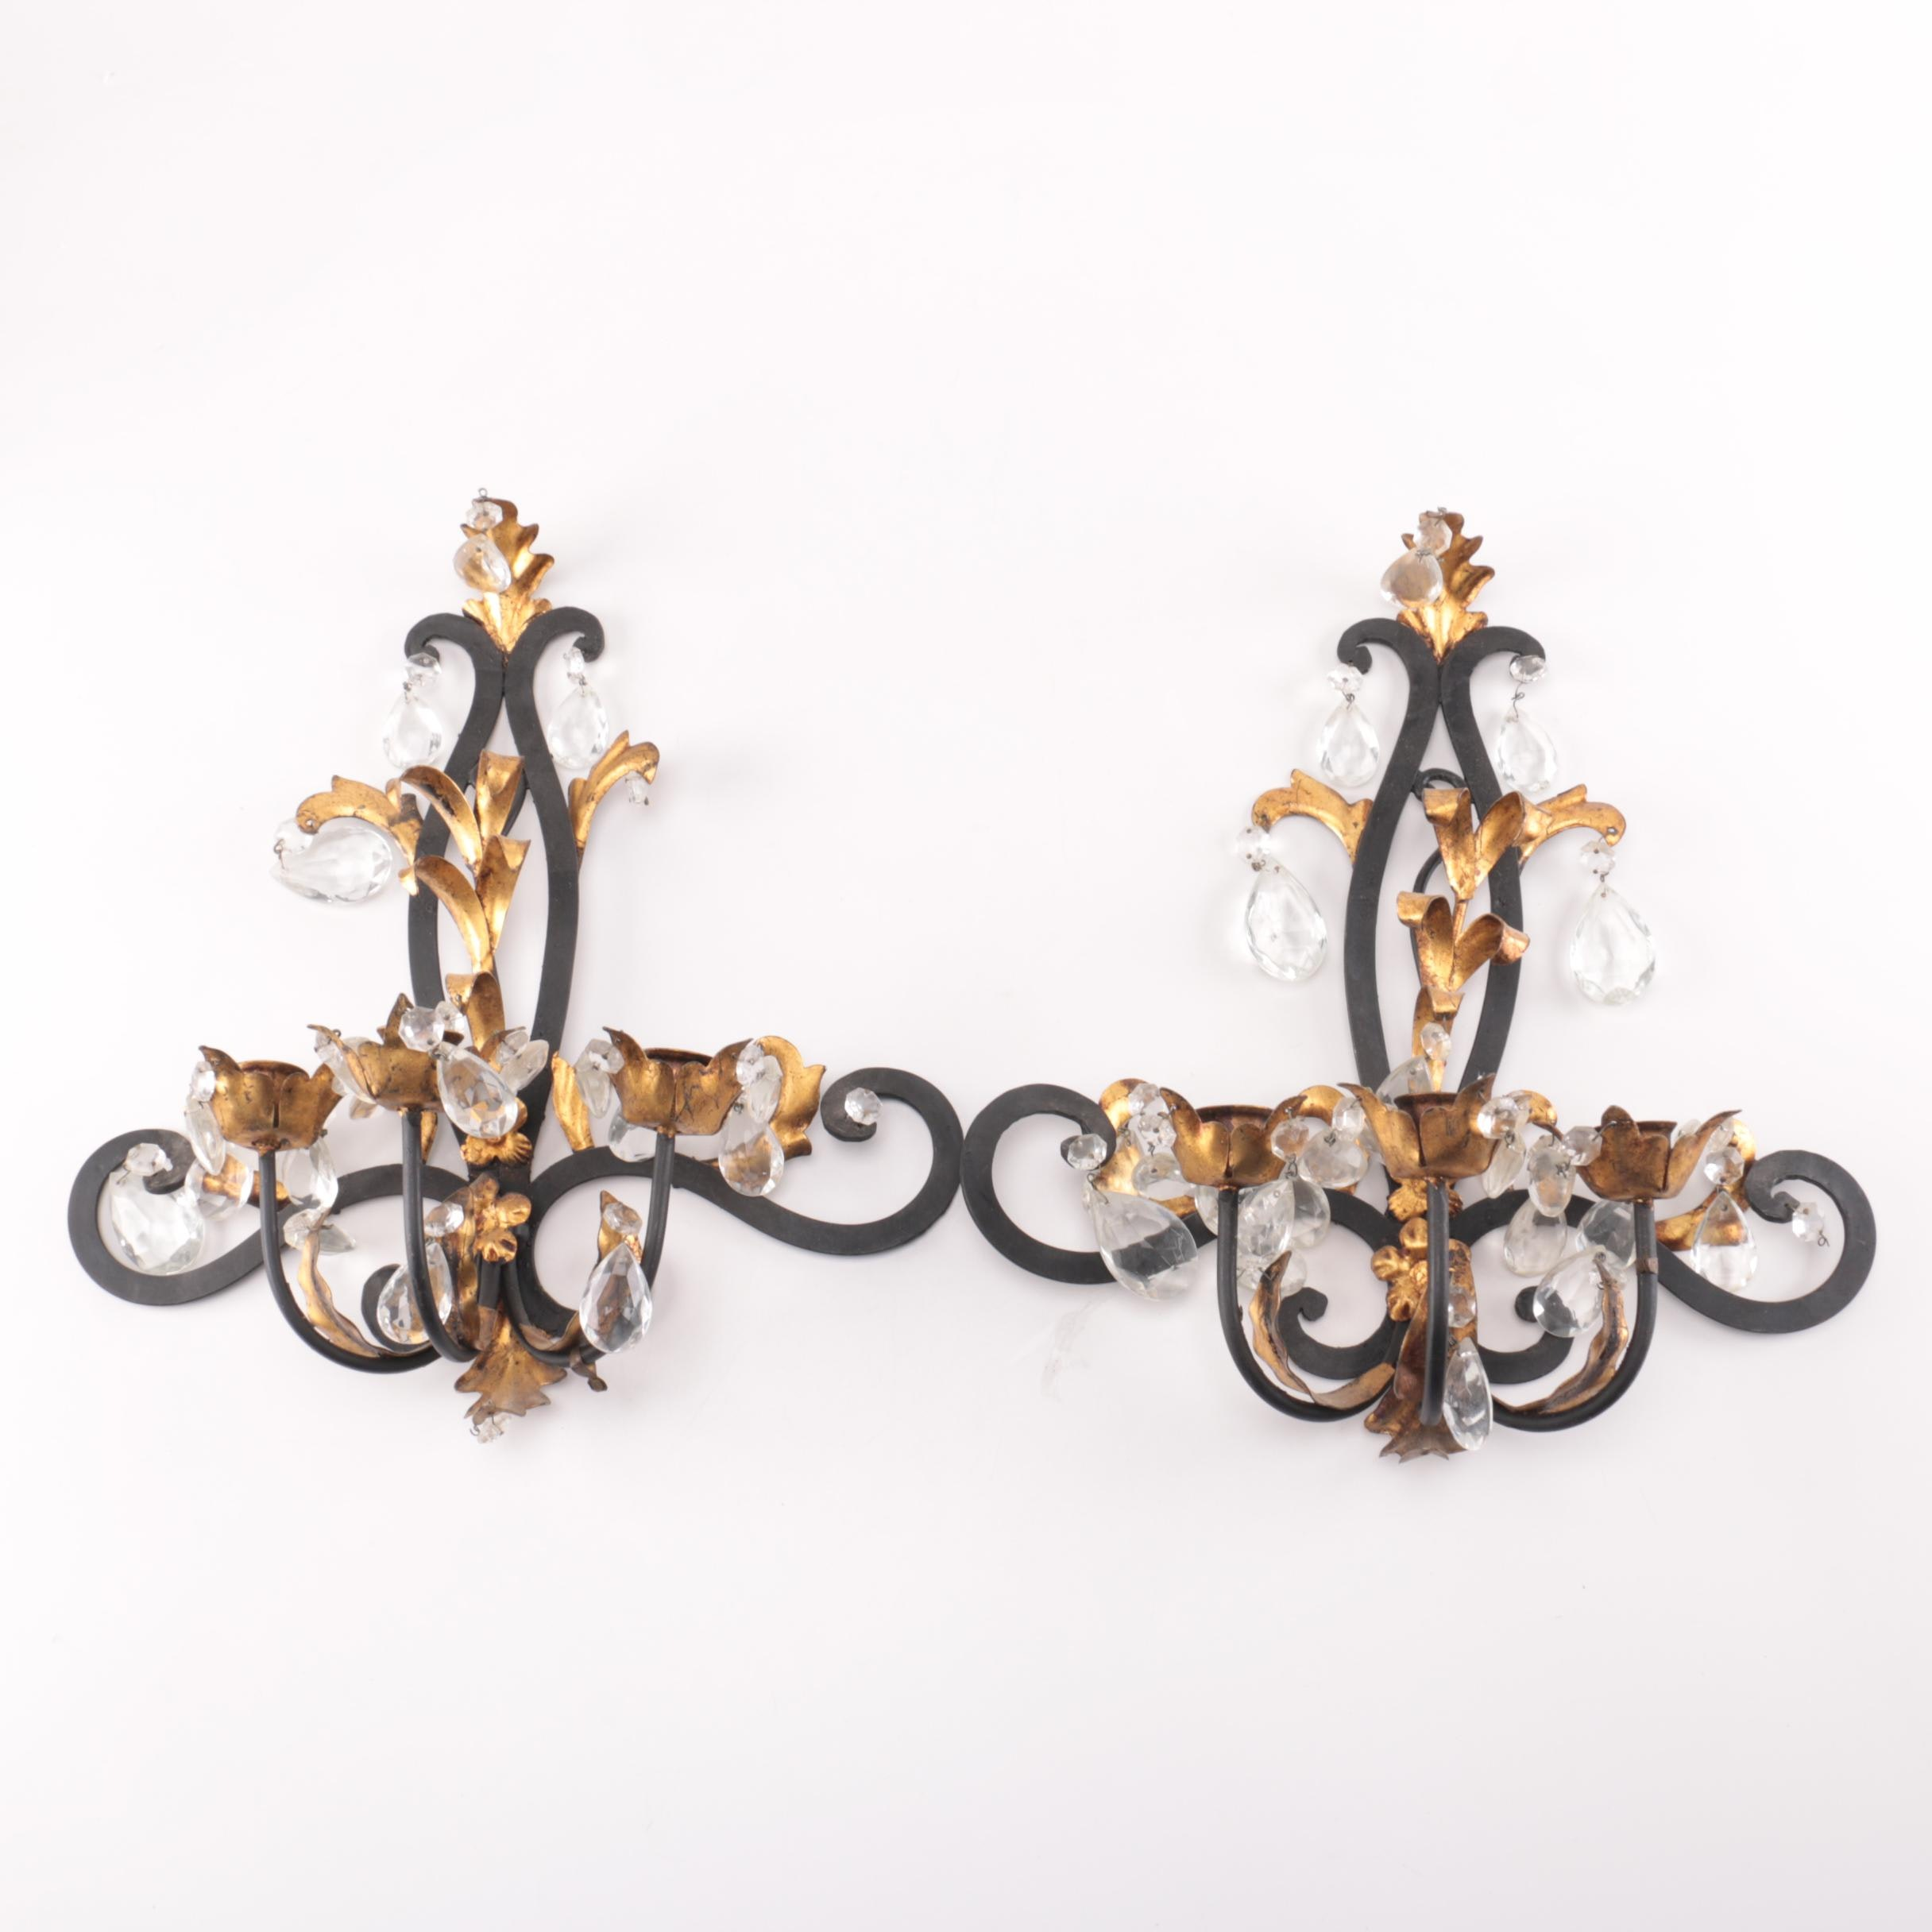 Wrought Iron and Glass Wall Sconces